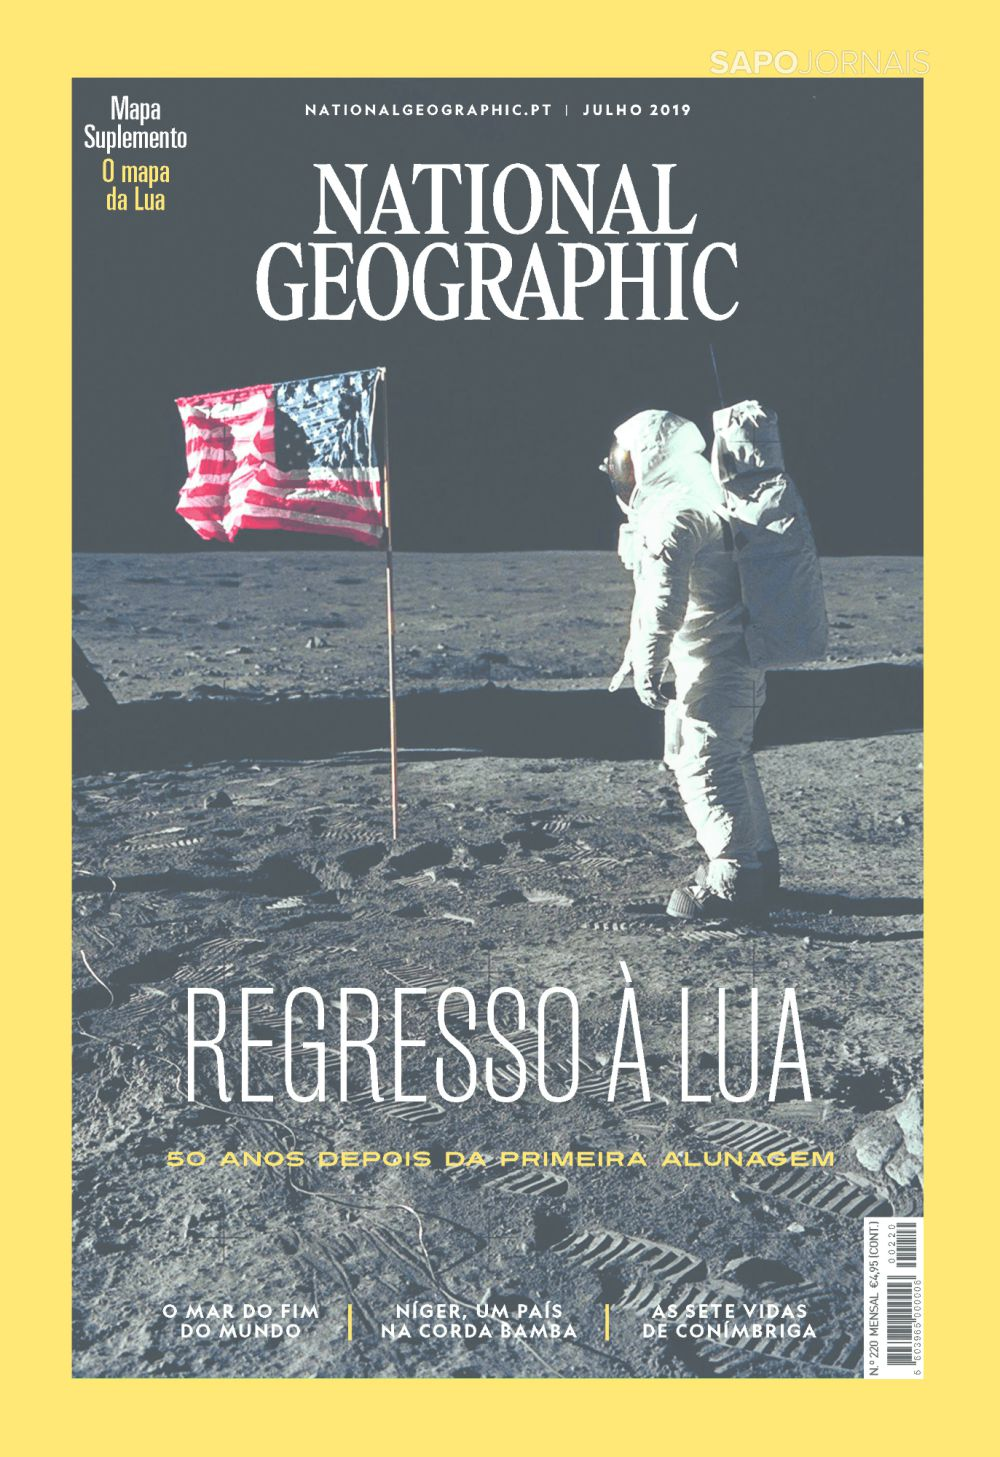 Capa da Revista National Geographic